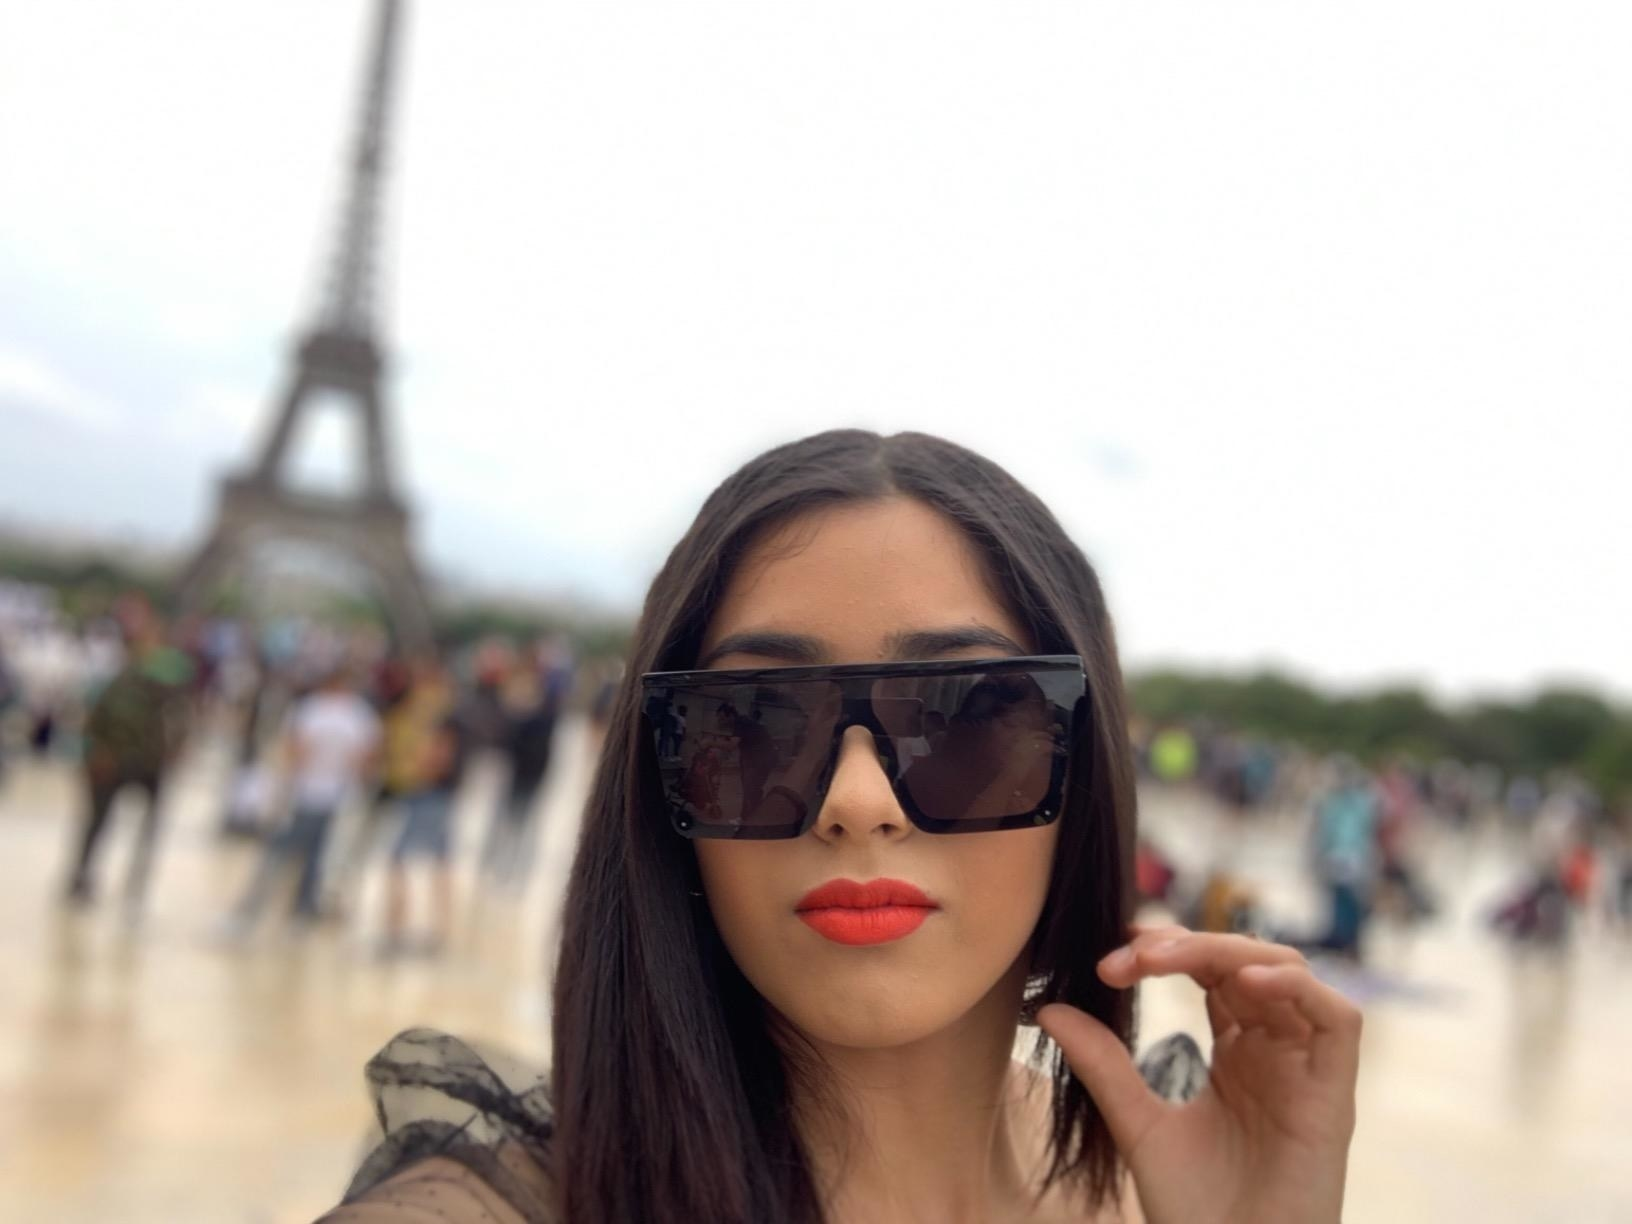 Reviewer in the black sunglasses